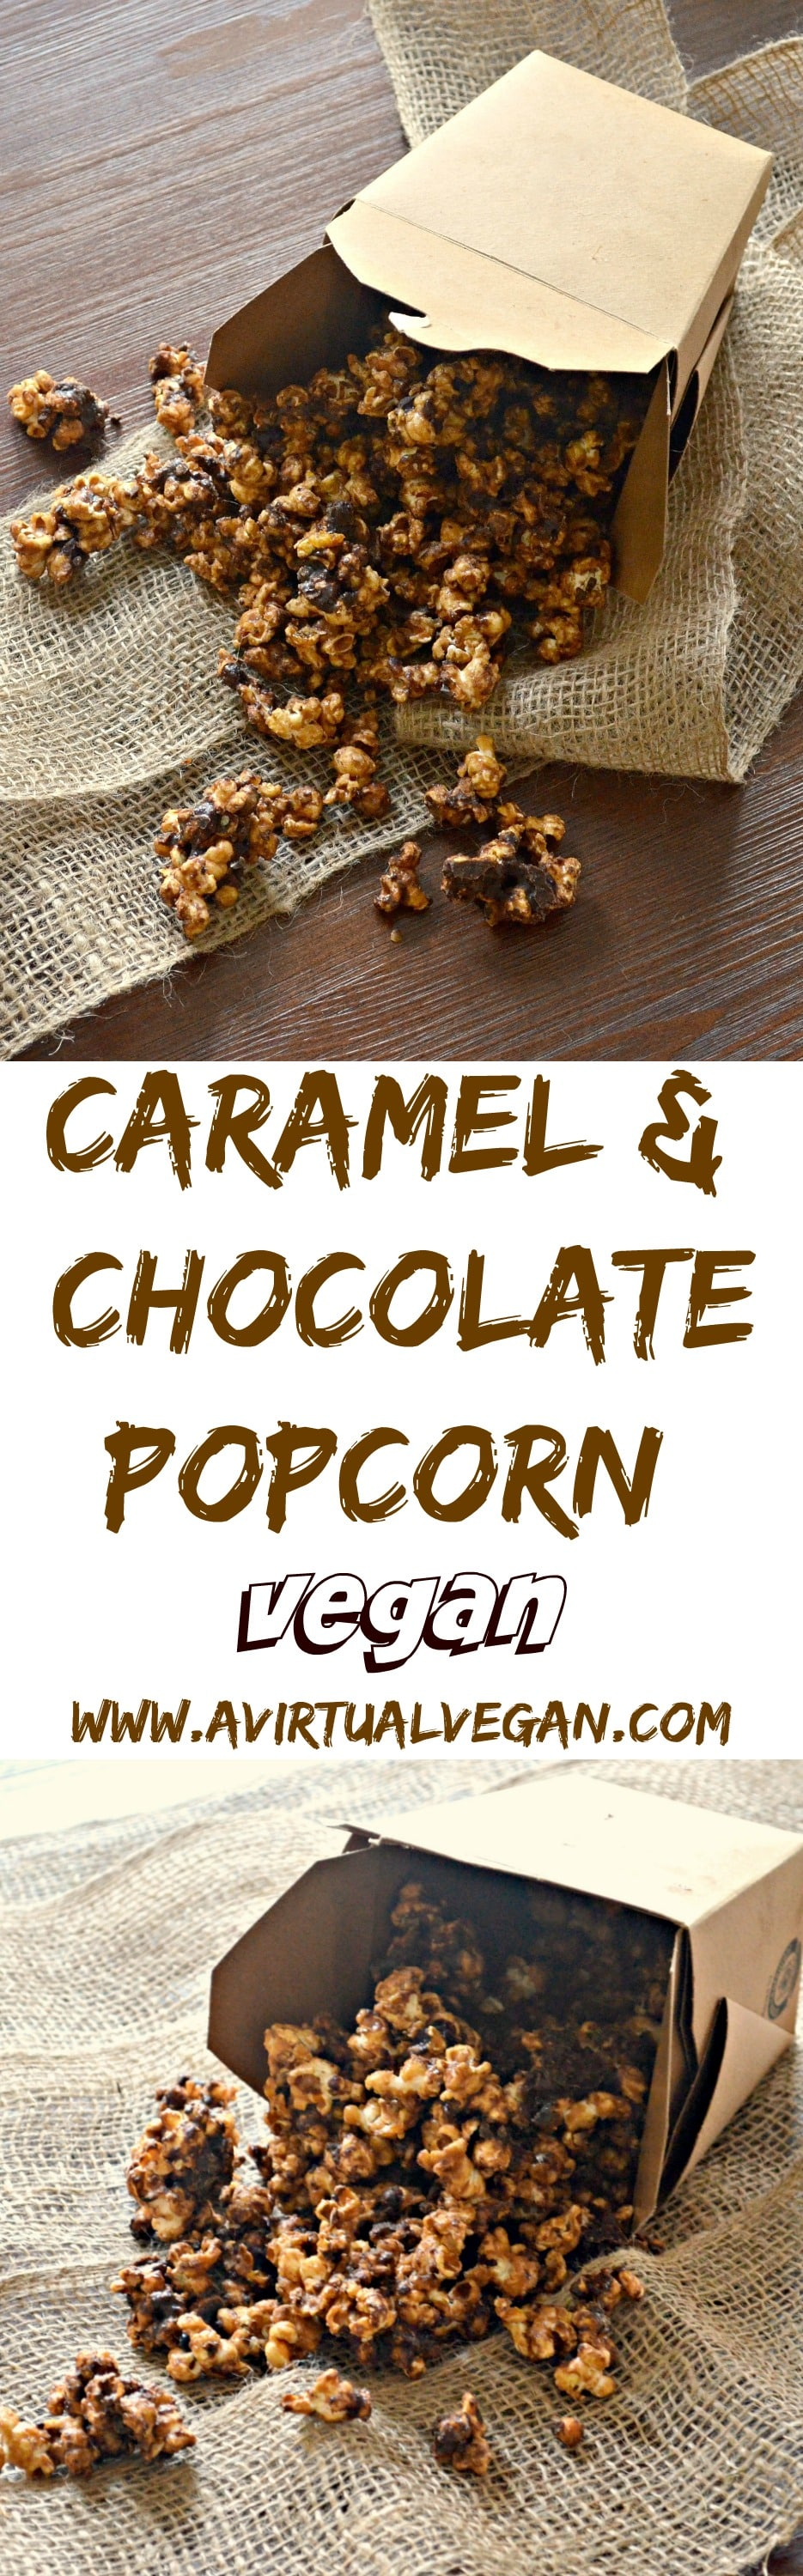 This popcorn is seriously addictive. Drenched in rich, buttery salted caramel, baked until perfectly crisp & then finished with lashings of chocolate, it is totally & utterly delicious & absolutely dairy free!  #popcorn #caramelpopcorn #vegan #chocolate